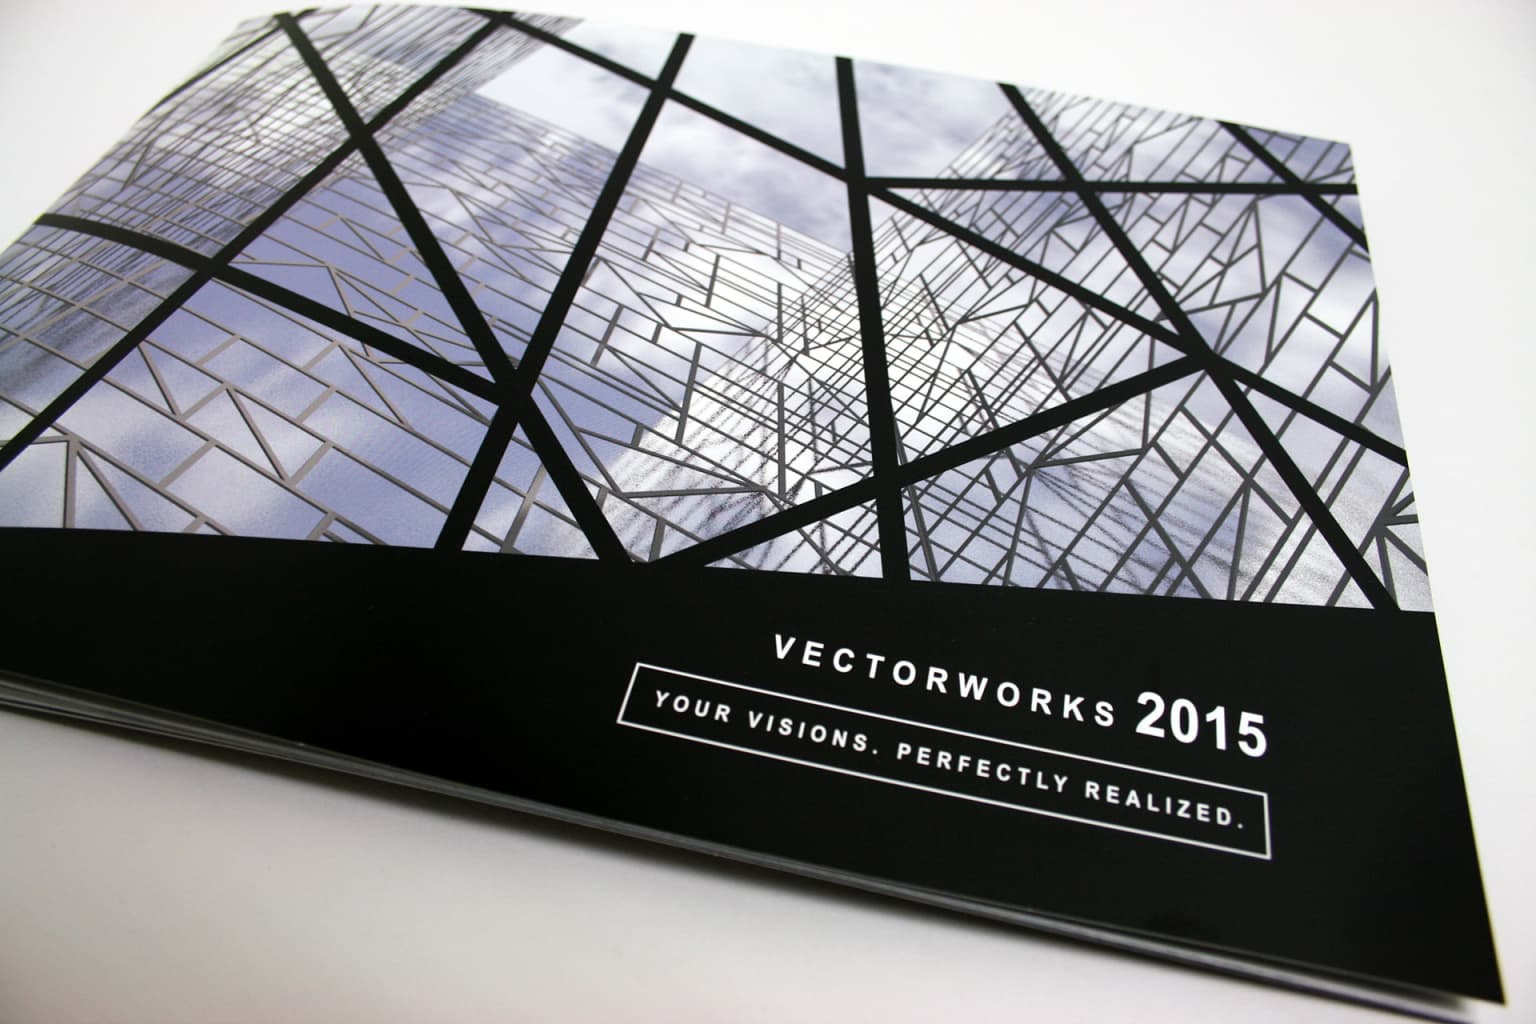 Vectorworks 2015 Marketing Campaign | Digital + Print